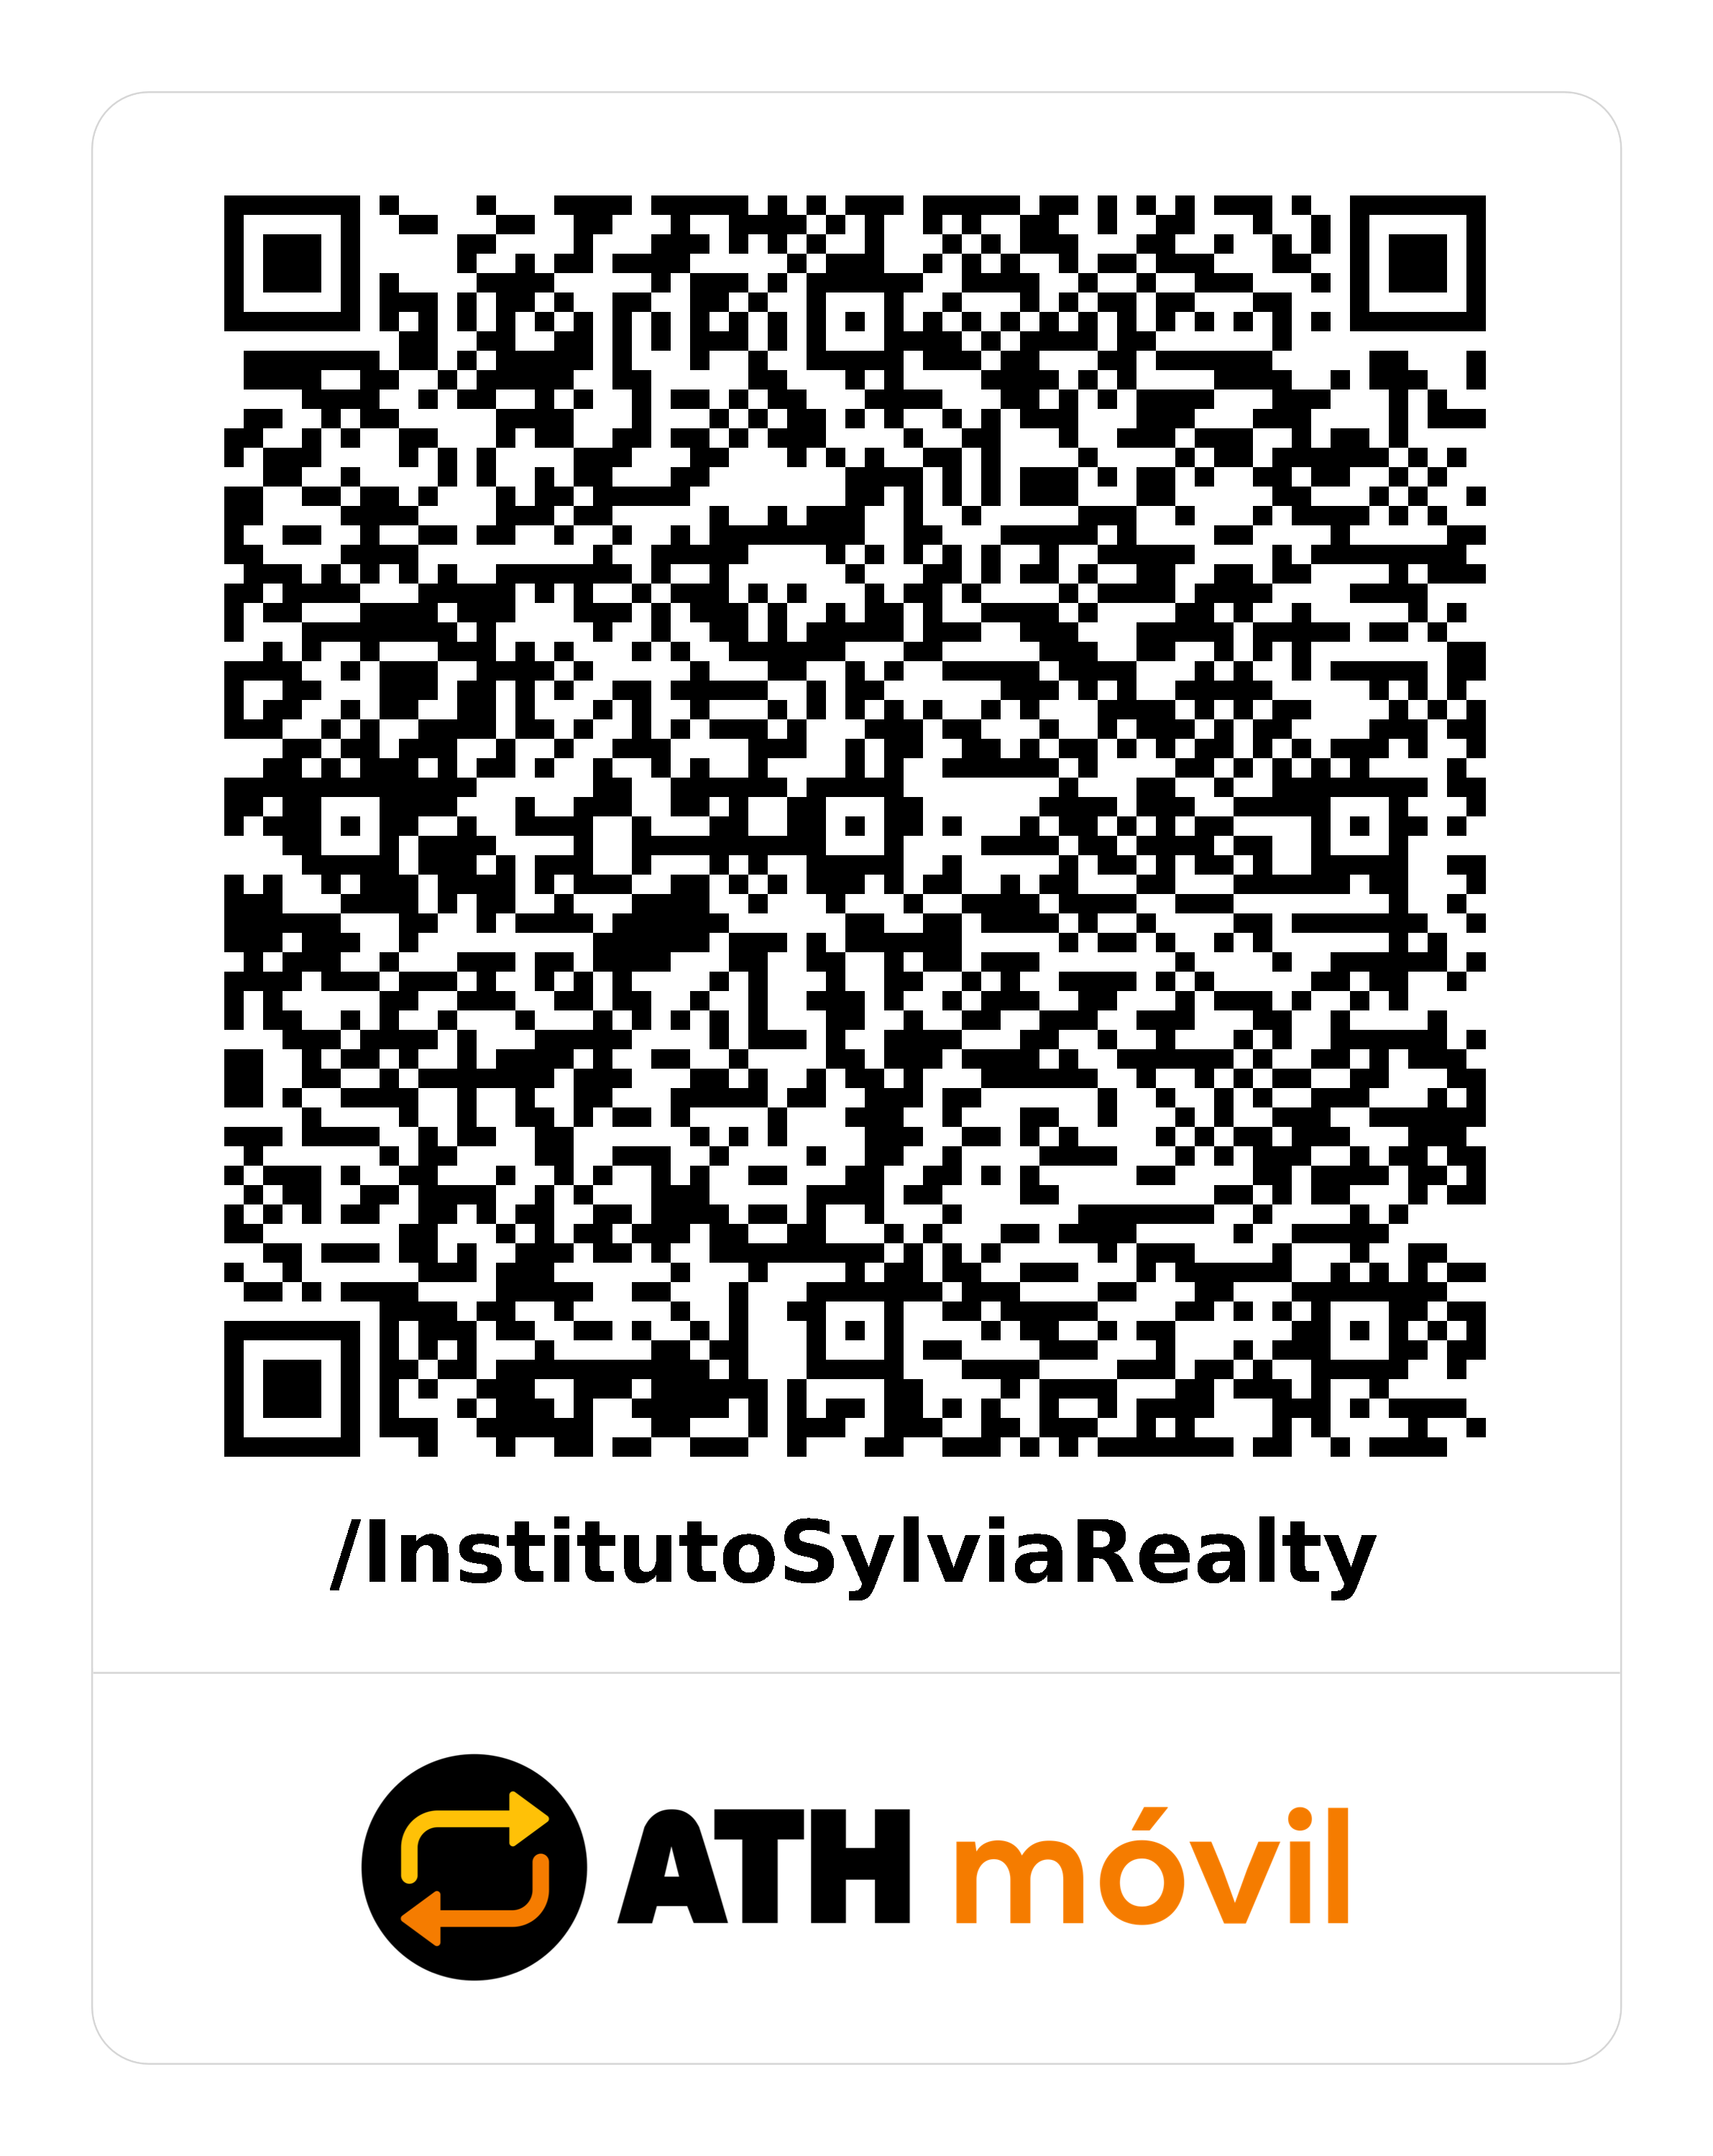 ath-movil_qrcode-institutosylviarealty